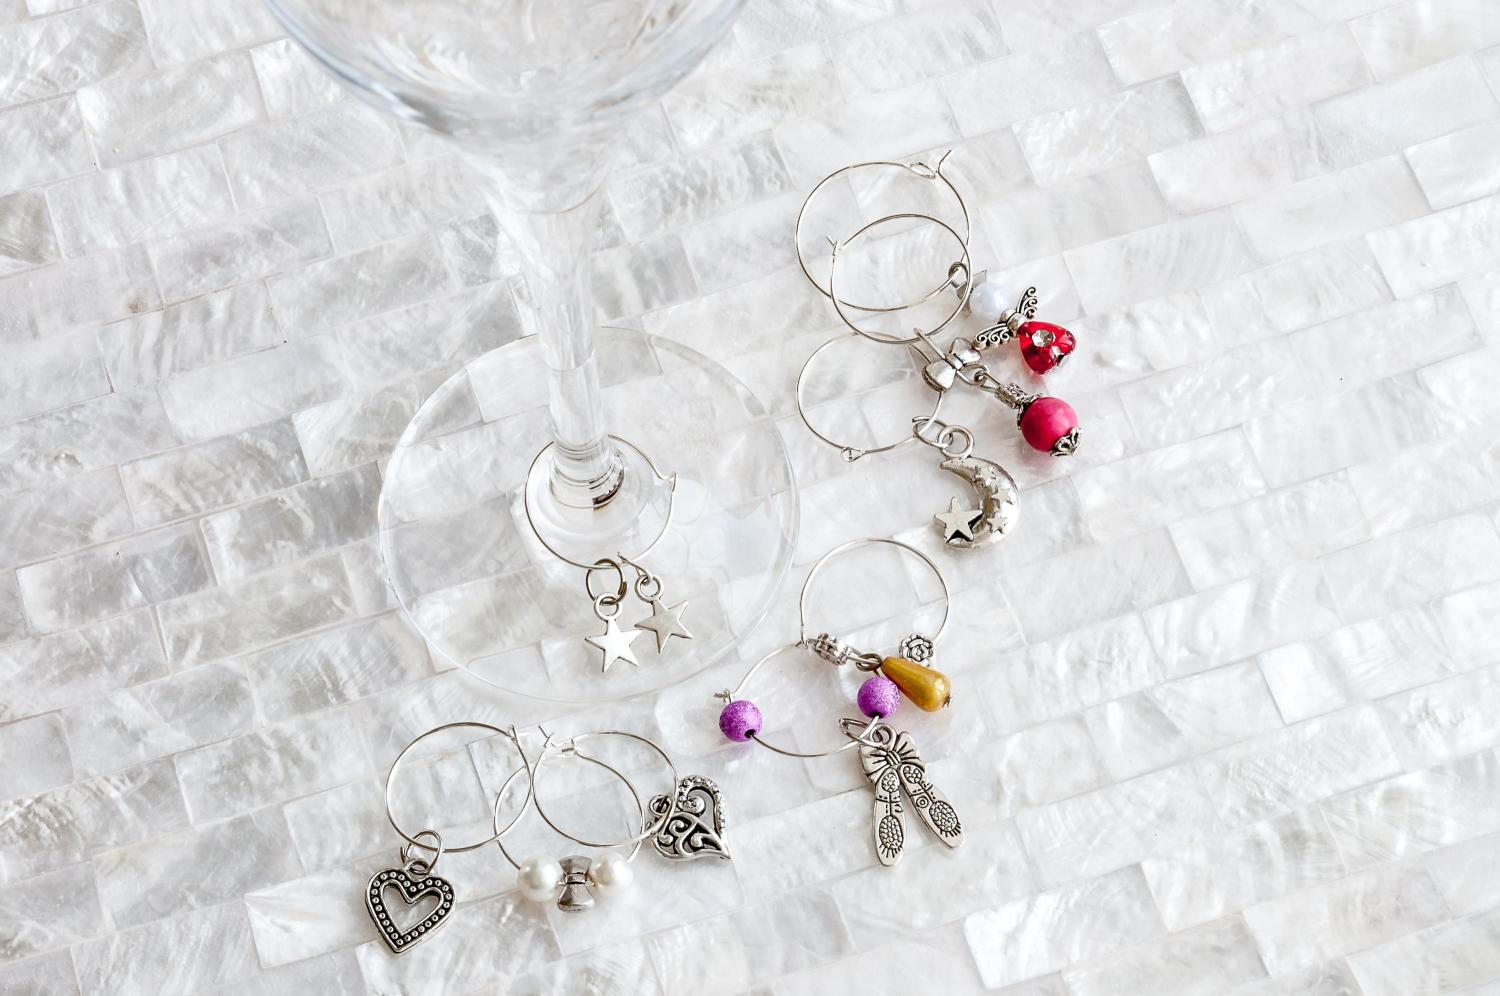 Champagne glass rings